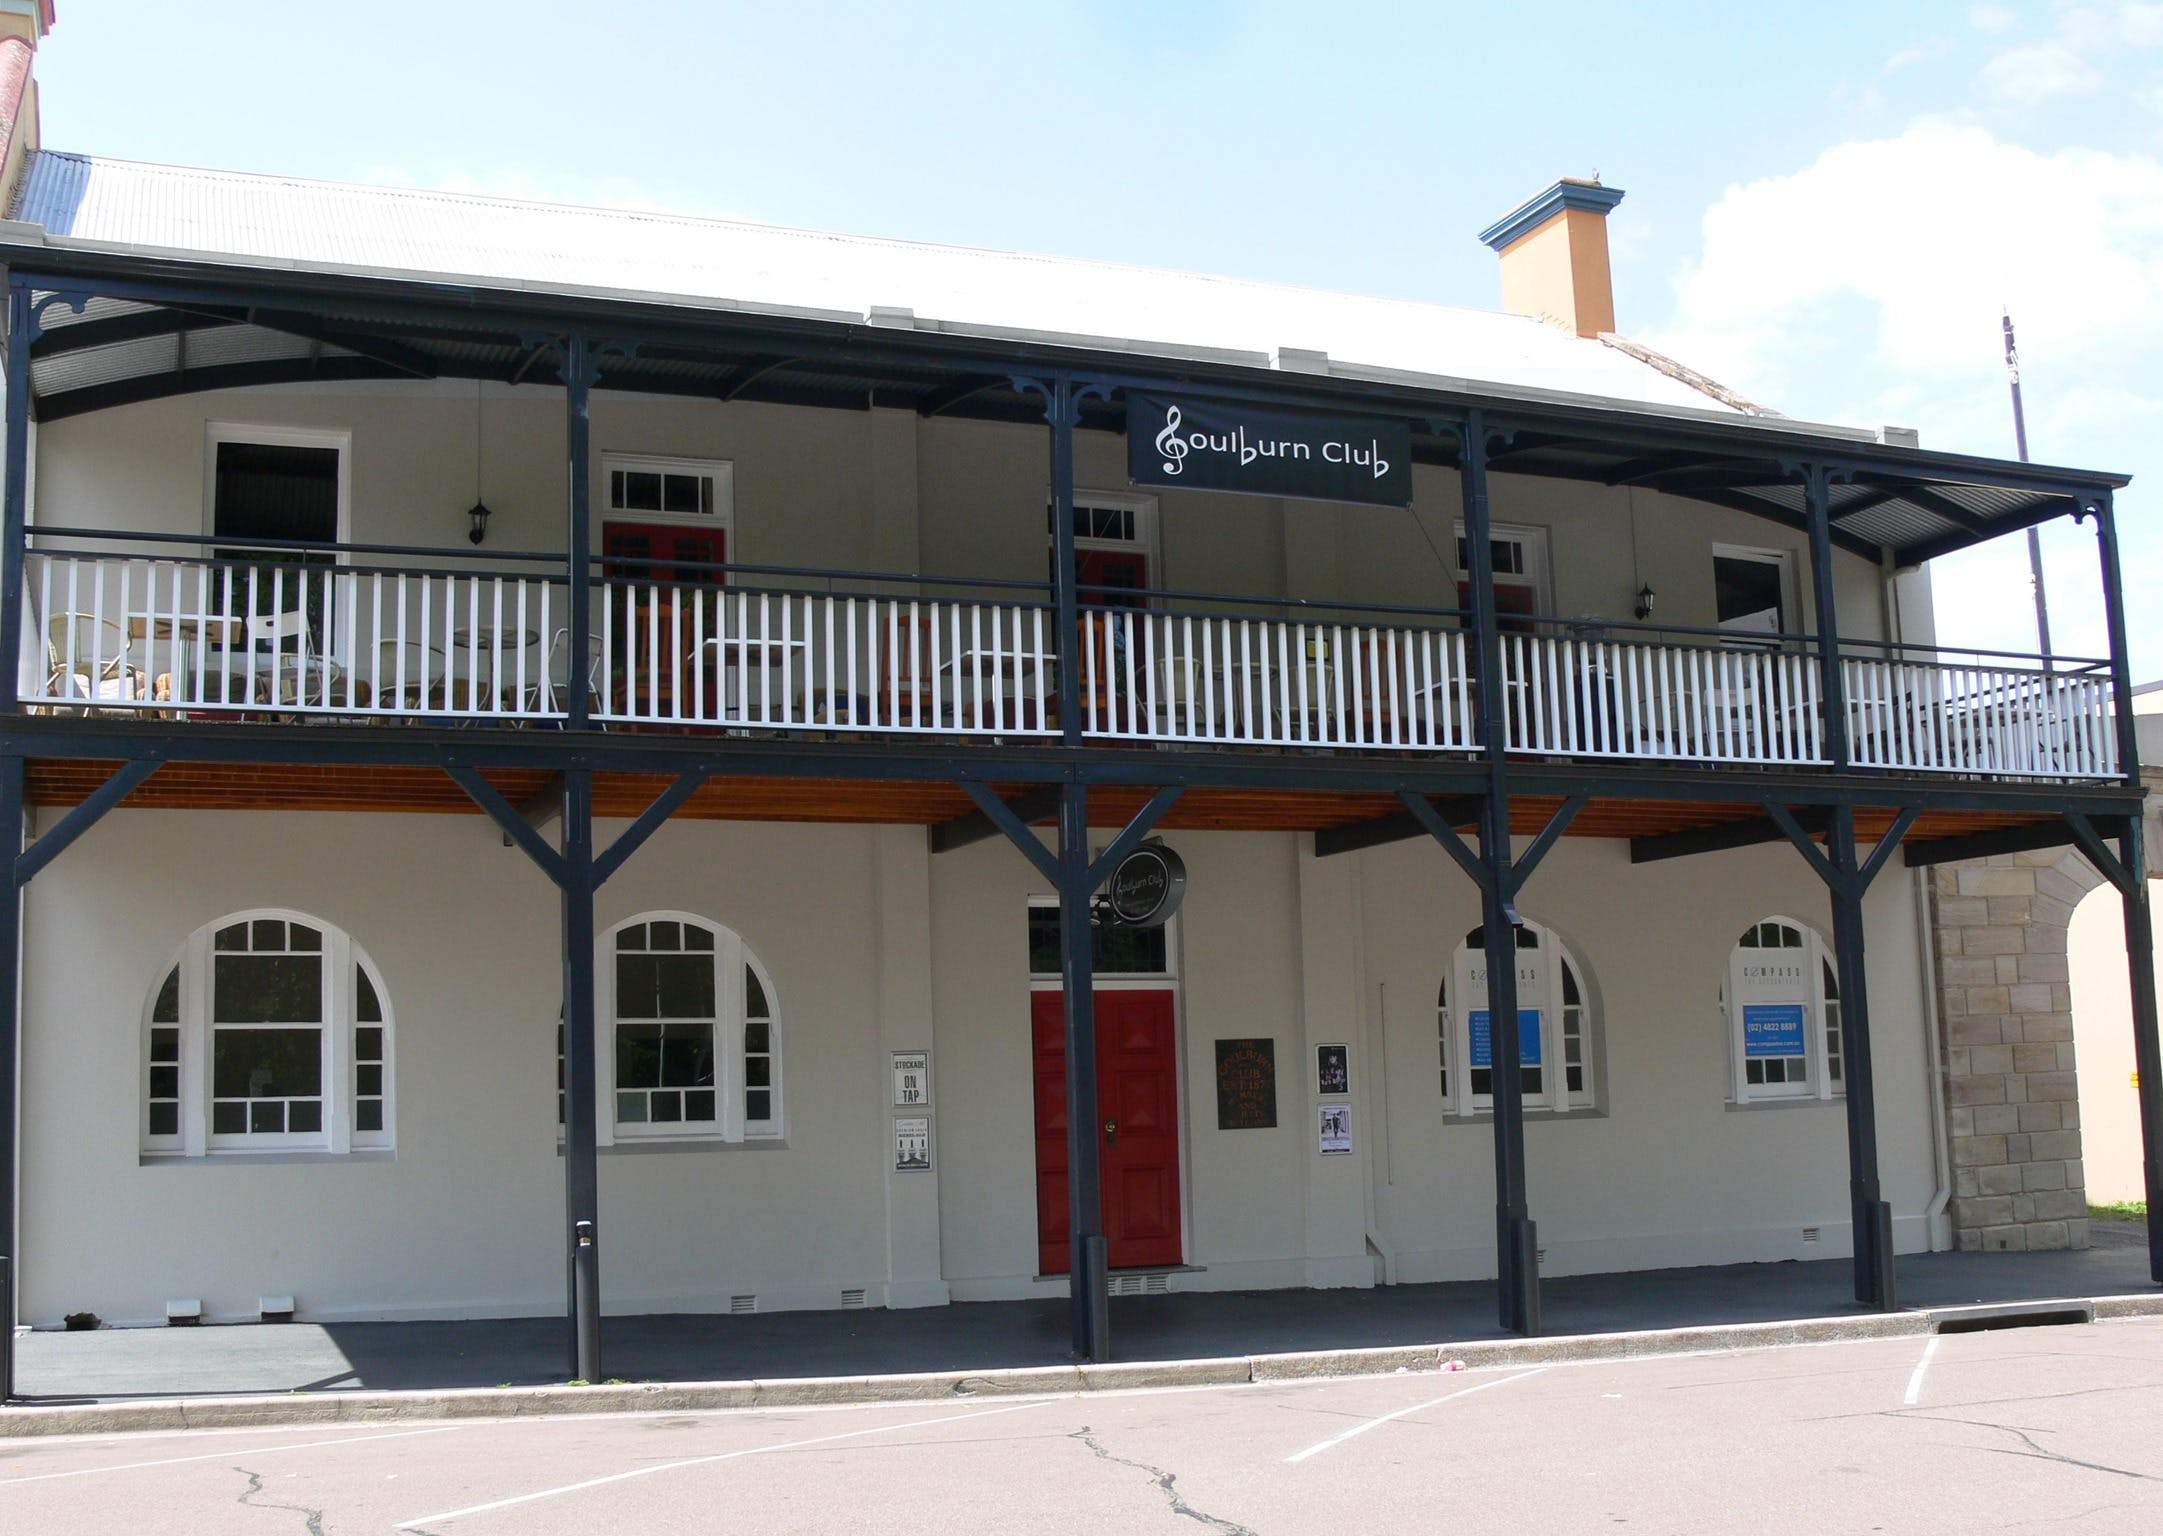 Open Mic Night at the Goulburn Club - Accommodation Great Ocean Road